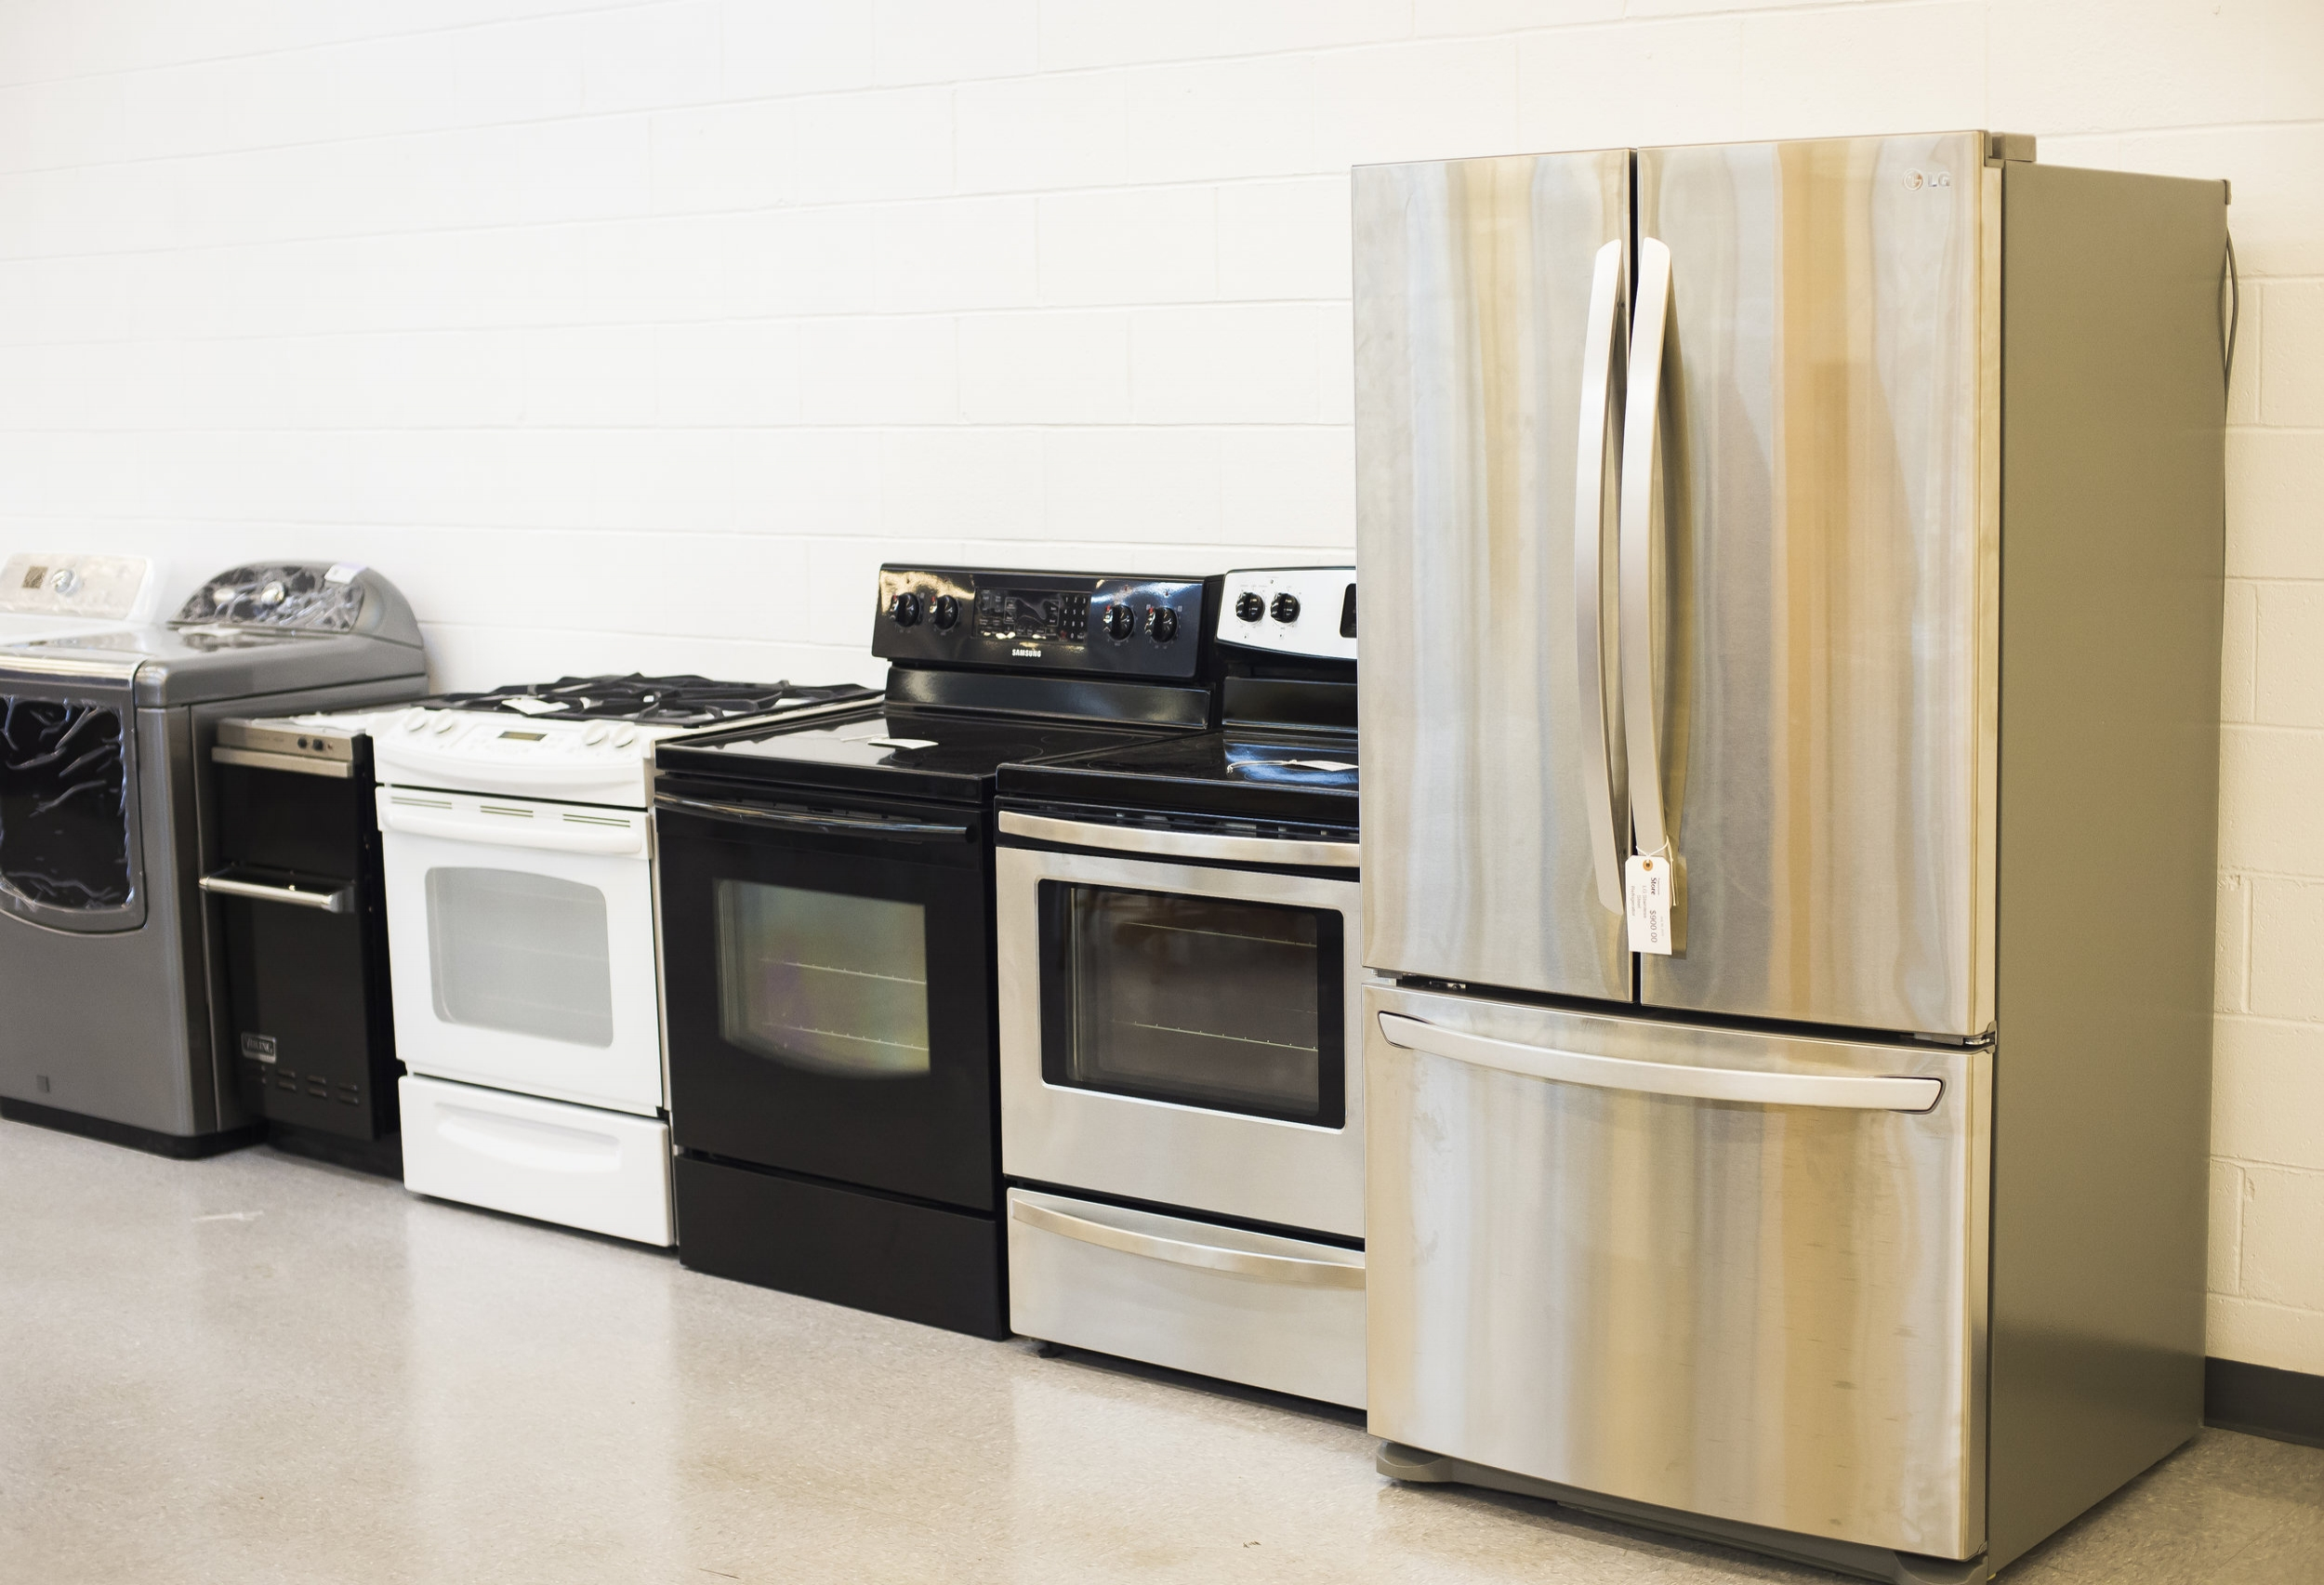 APPLIANCES   All donated appliances must be clean and in working condition. You can find both gas and electric stoves, washers, and driers, as well as refrigerators.